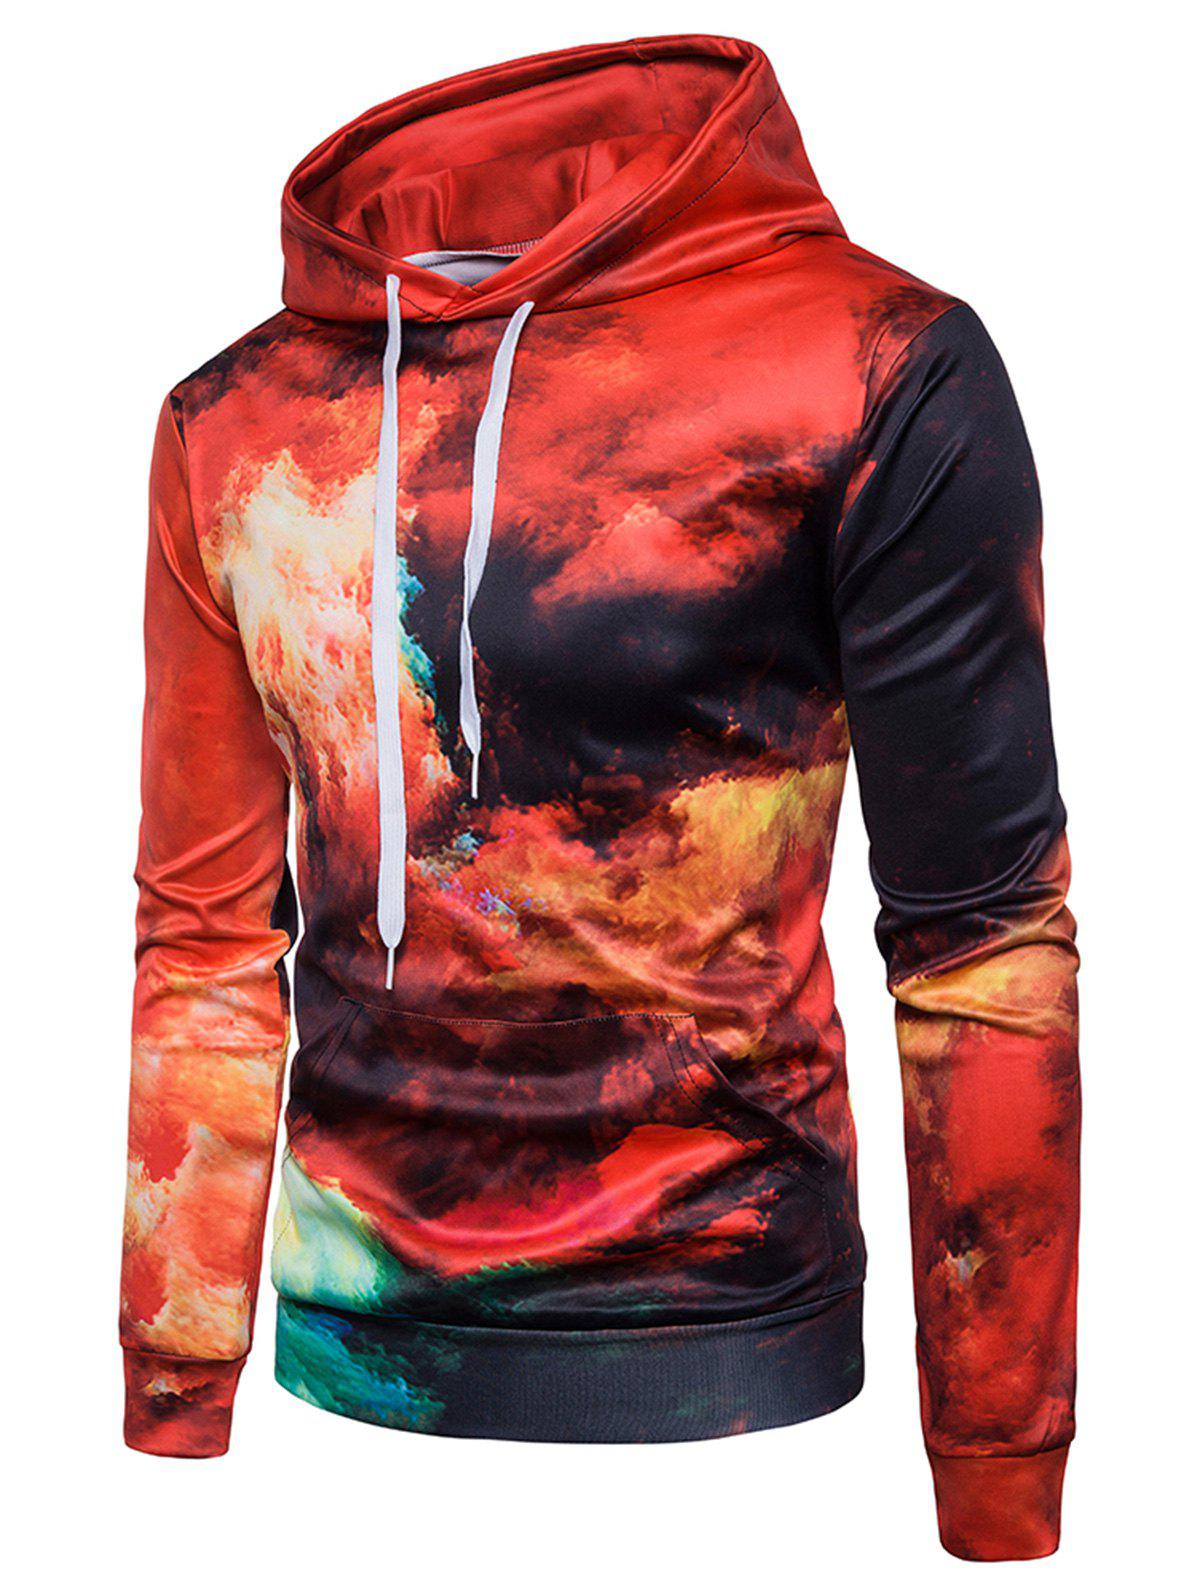 Flame Print Kangaroo Pocket Hoodie - COLORMIX 3XL